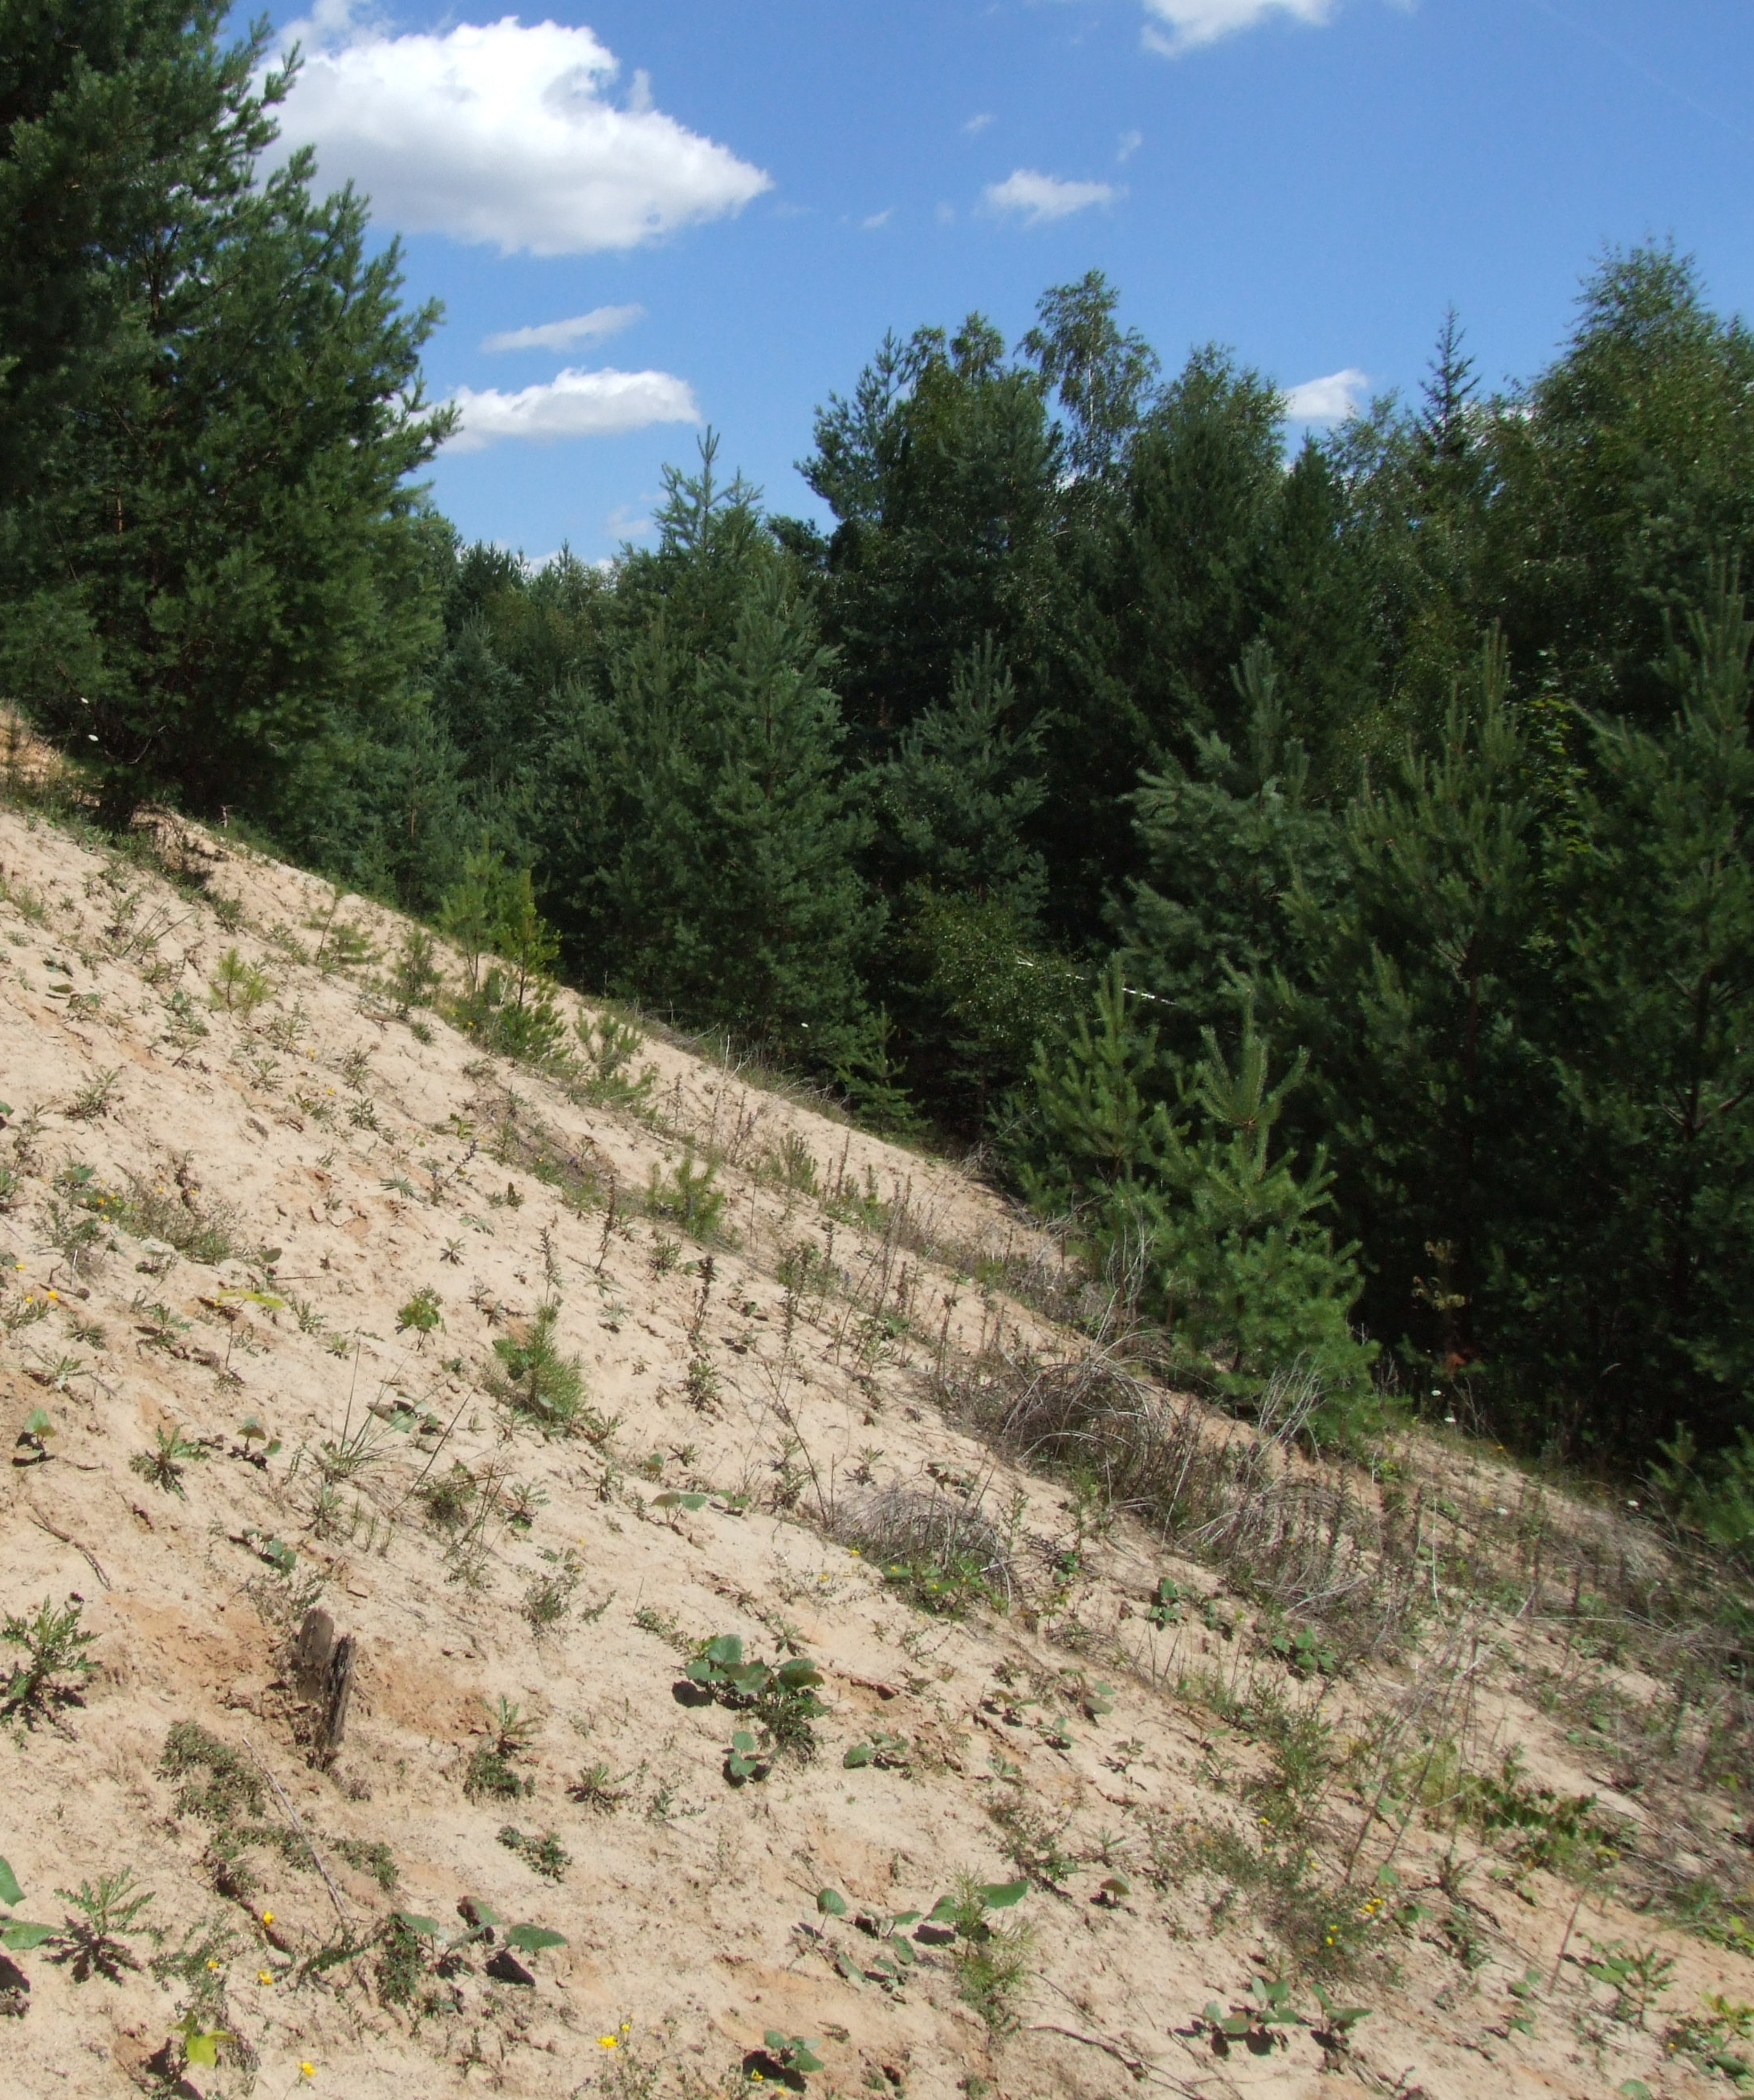 Slope of Roudny, a sandy heap after gold mining.